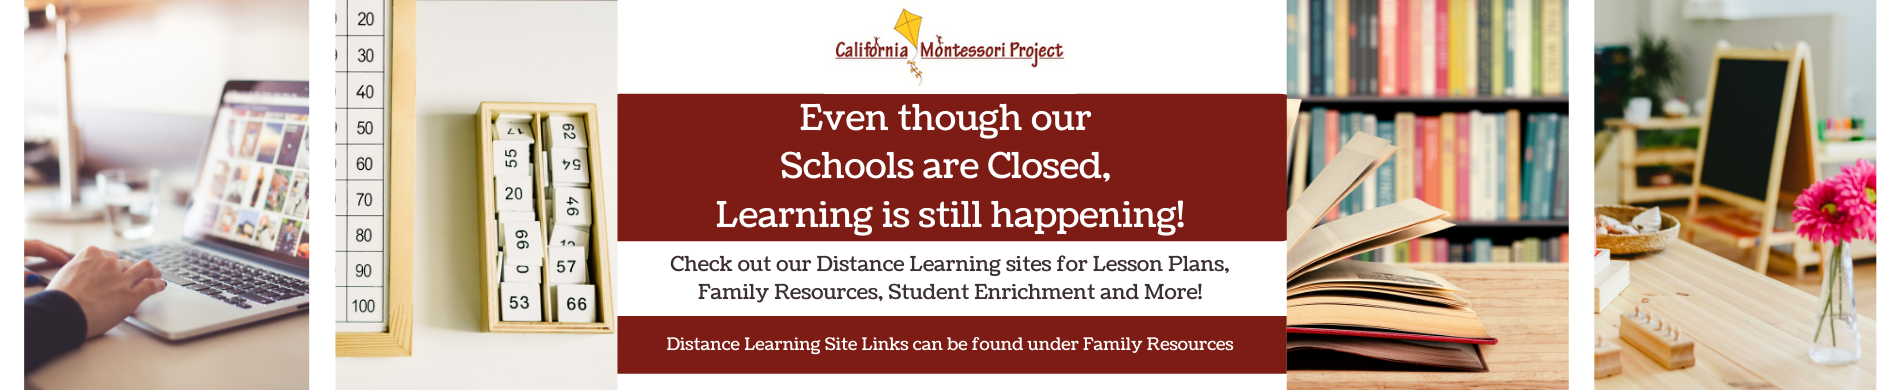 Even though our schools are closed, learning is still happening. Check out our distance learning sites for lesson plans, family resources, student enrichment and more! Distance Learning site links can be found under family resources.